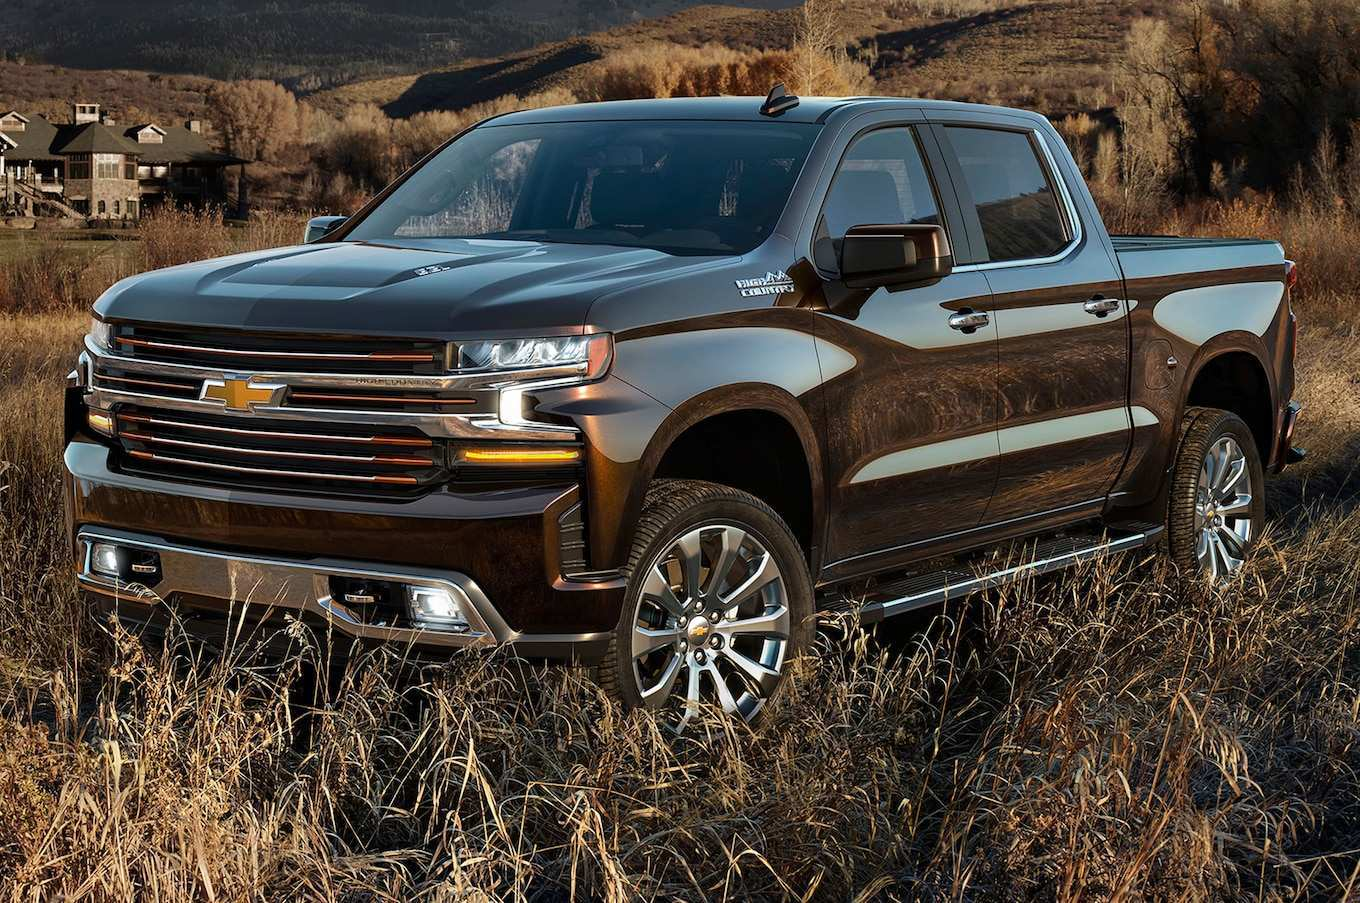 58 Concept of 2019 Chevrolet 1500 Rumors with 2019 Chevrolet 1500